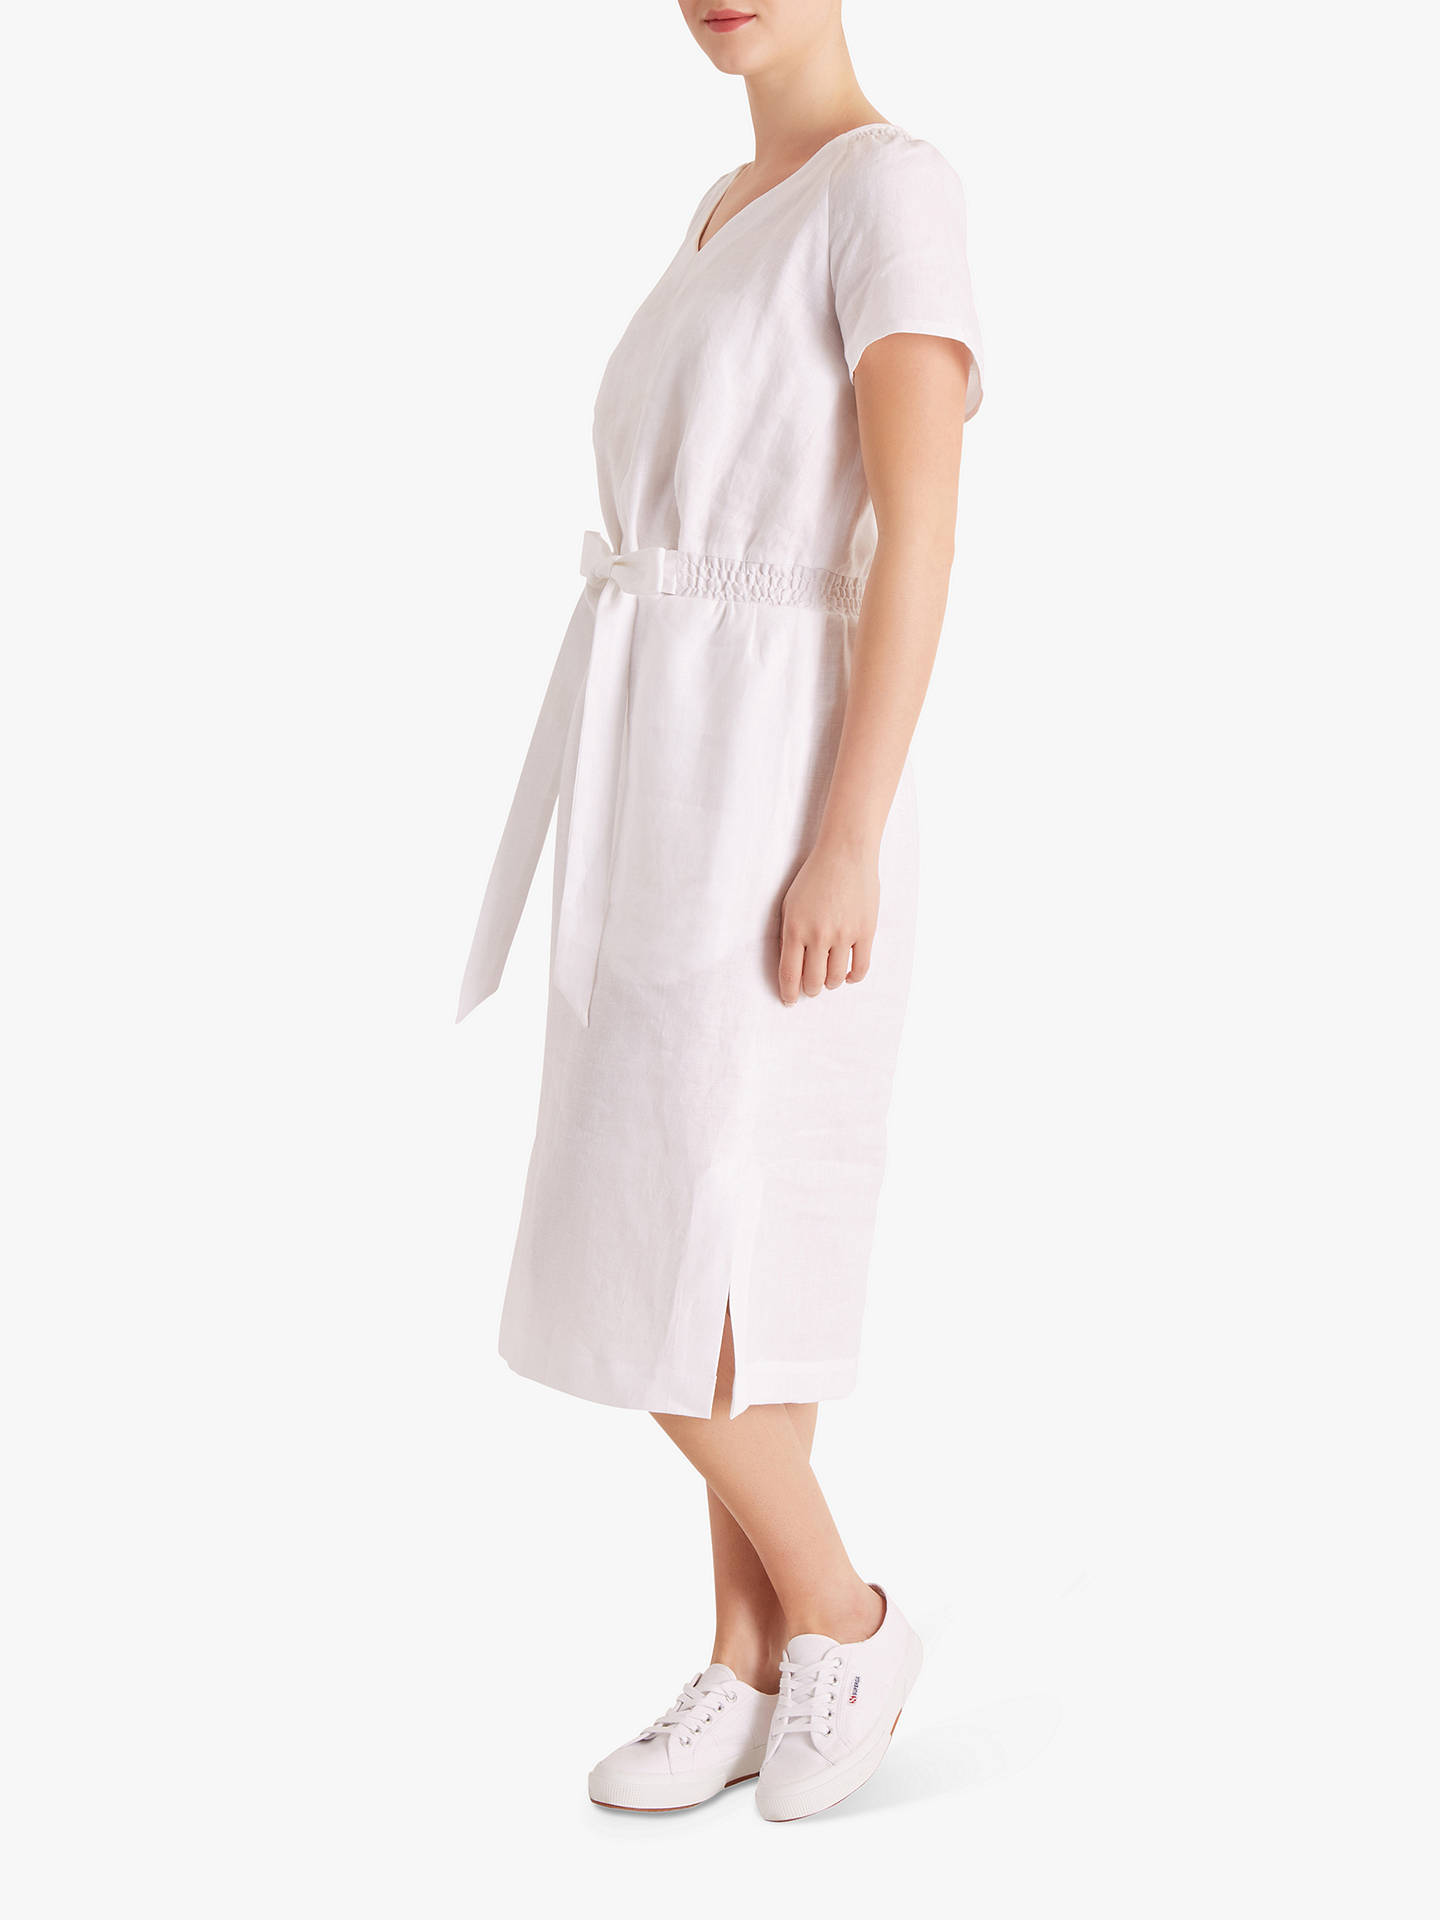 Buy Fenn Wright Manson Petite Stacey Dress, White, 8 Online at johnlewis.com